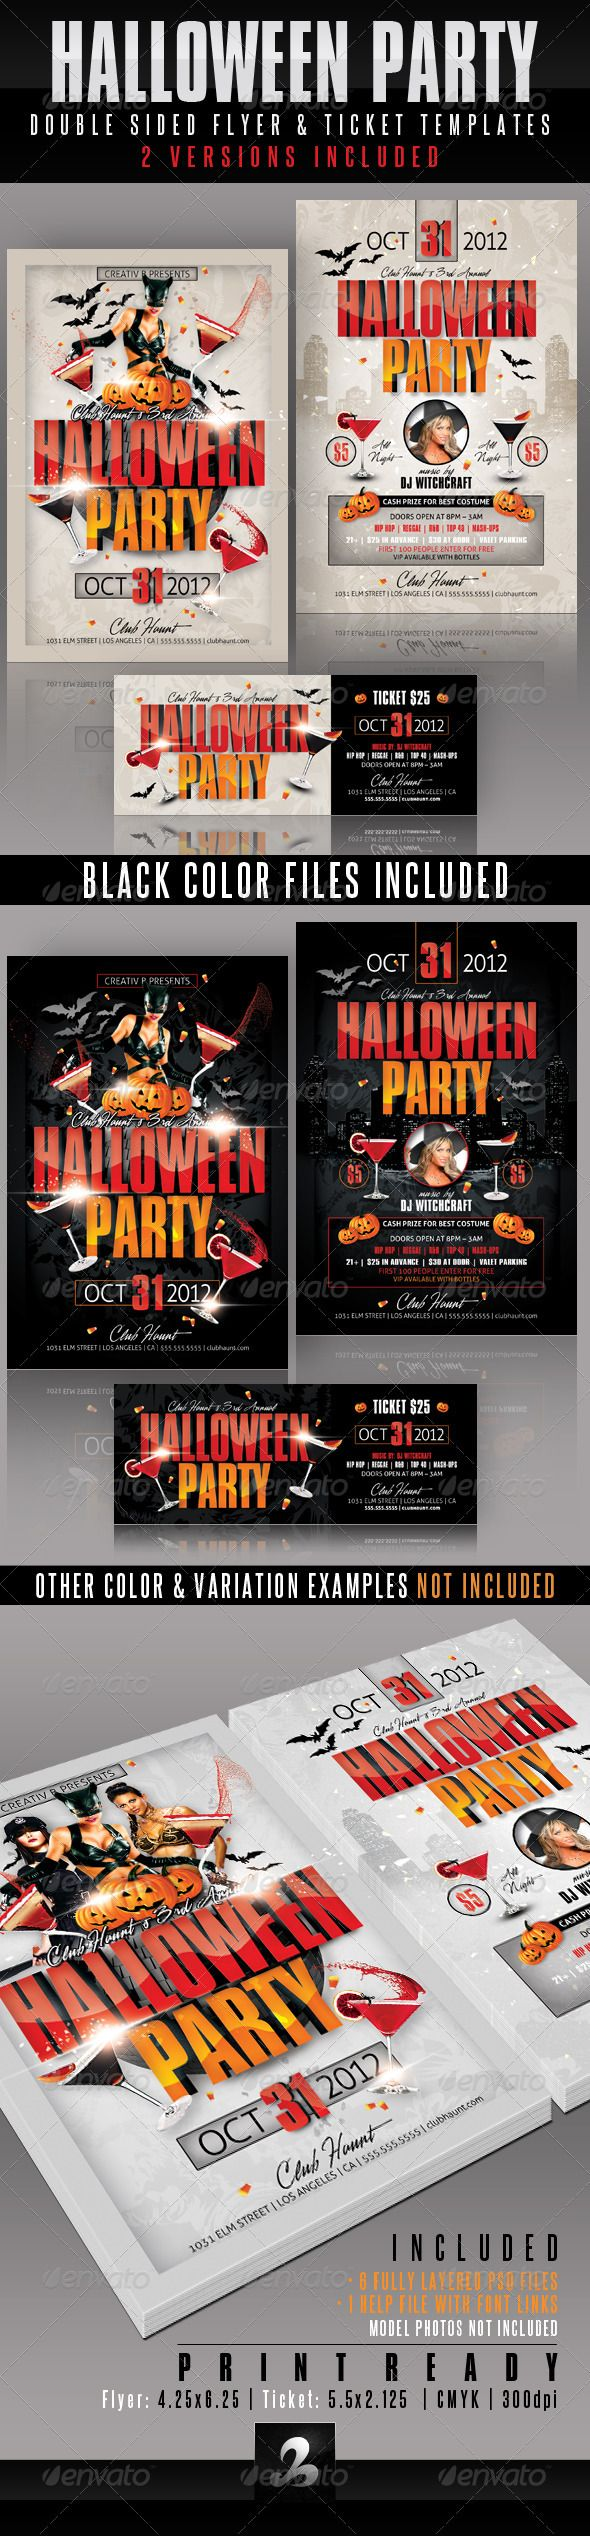 halloween party flyer and ticket templates graphicriver use this flyer design for any halloween party